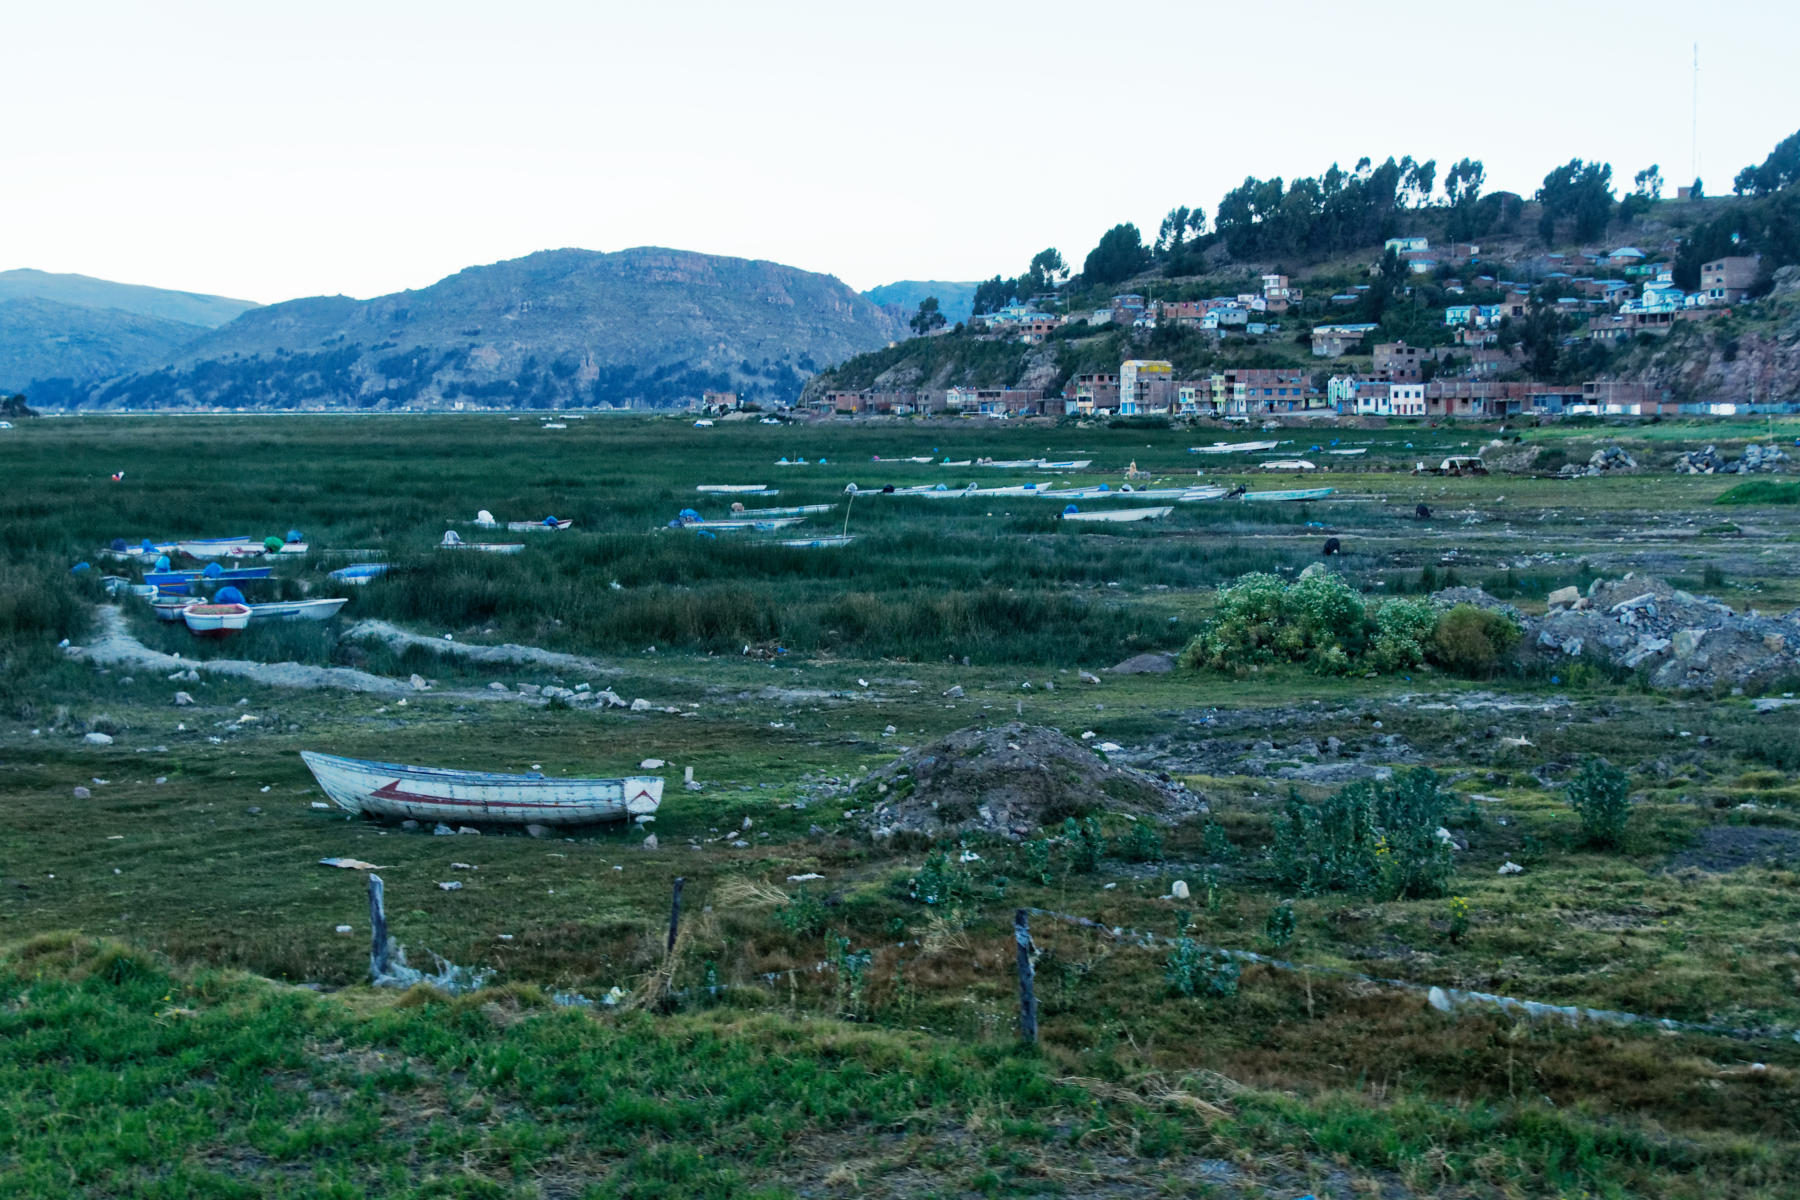 The shores of Lake Titicaca in the late afternoon